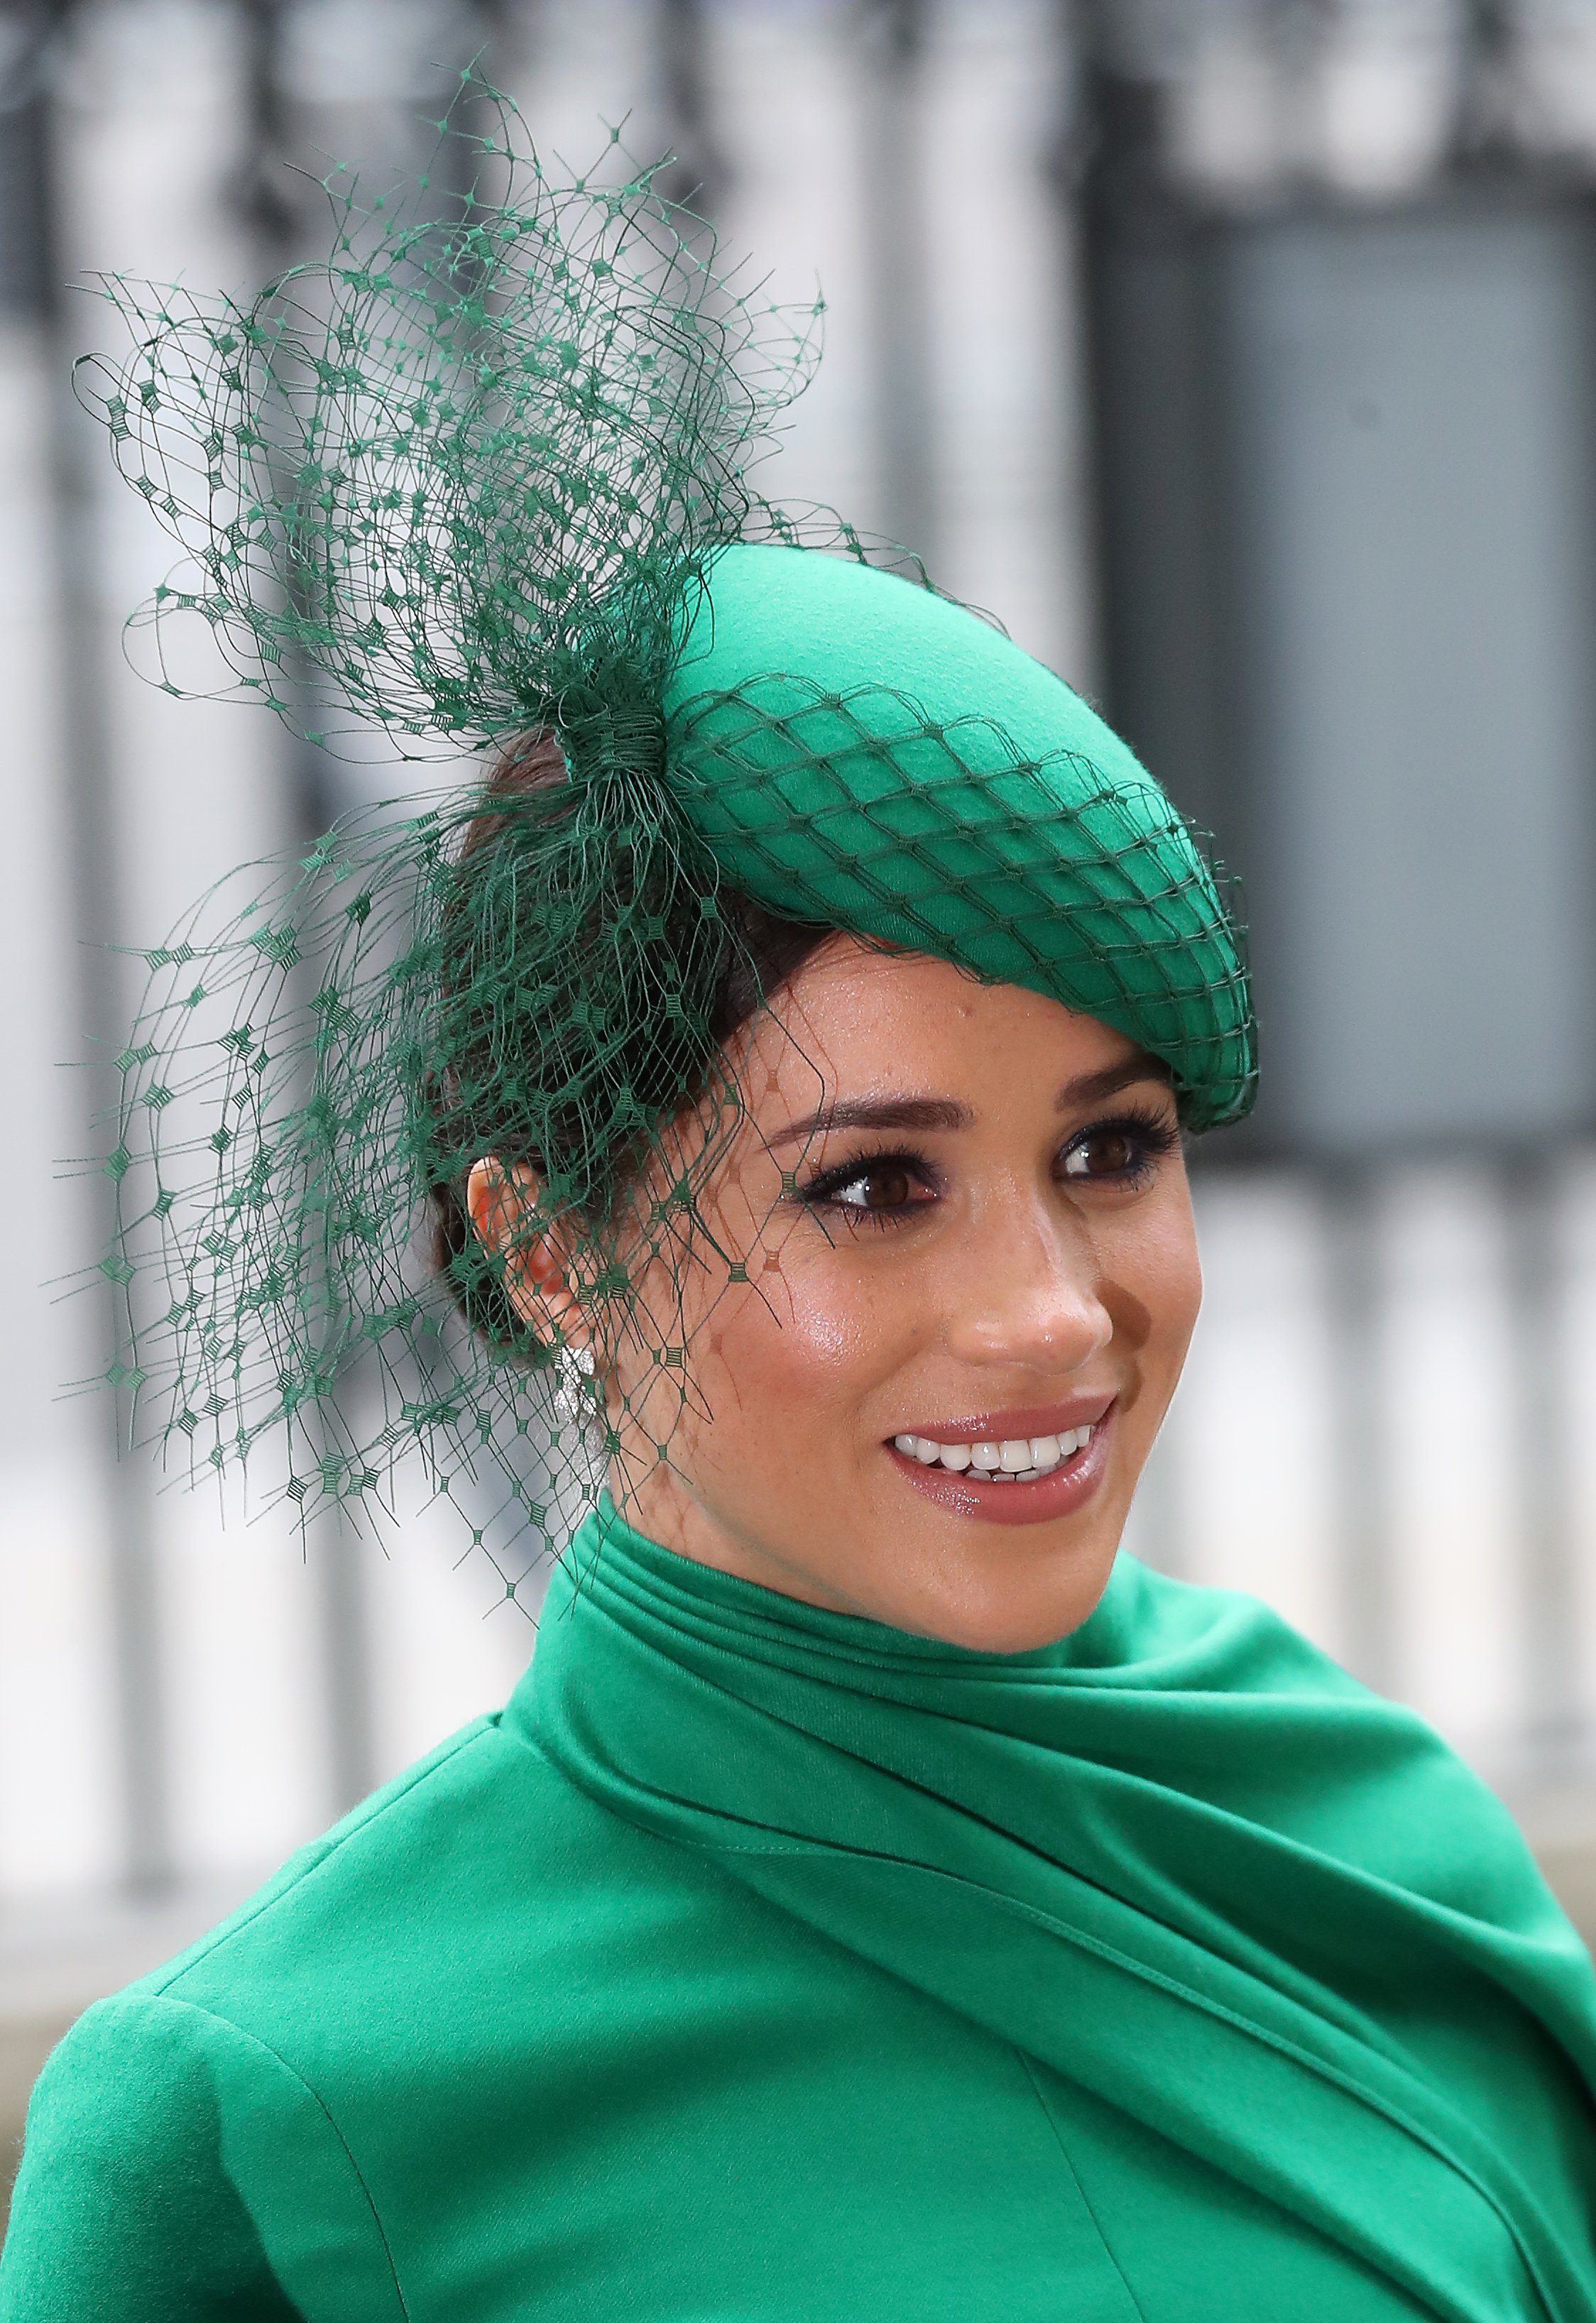 Meghan Markle attends the Commonwealth Day Service 2020 on March 09, 2020, in London, England. | Source: Getty Images.